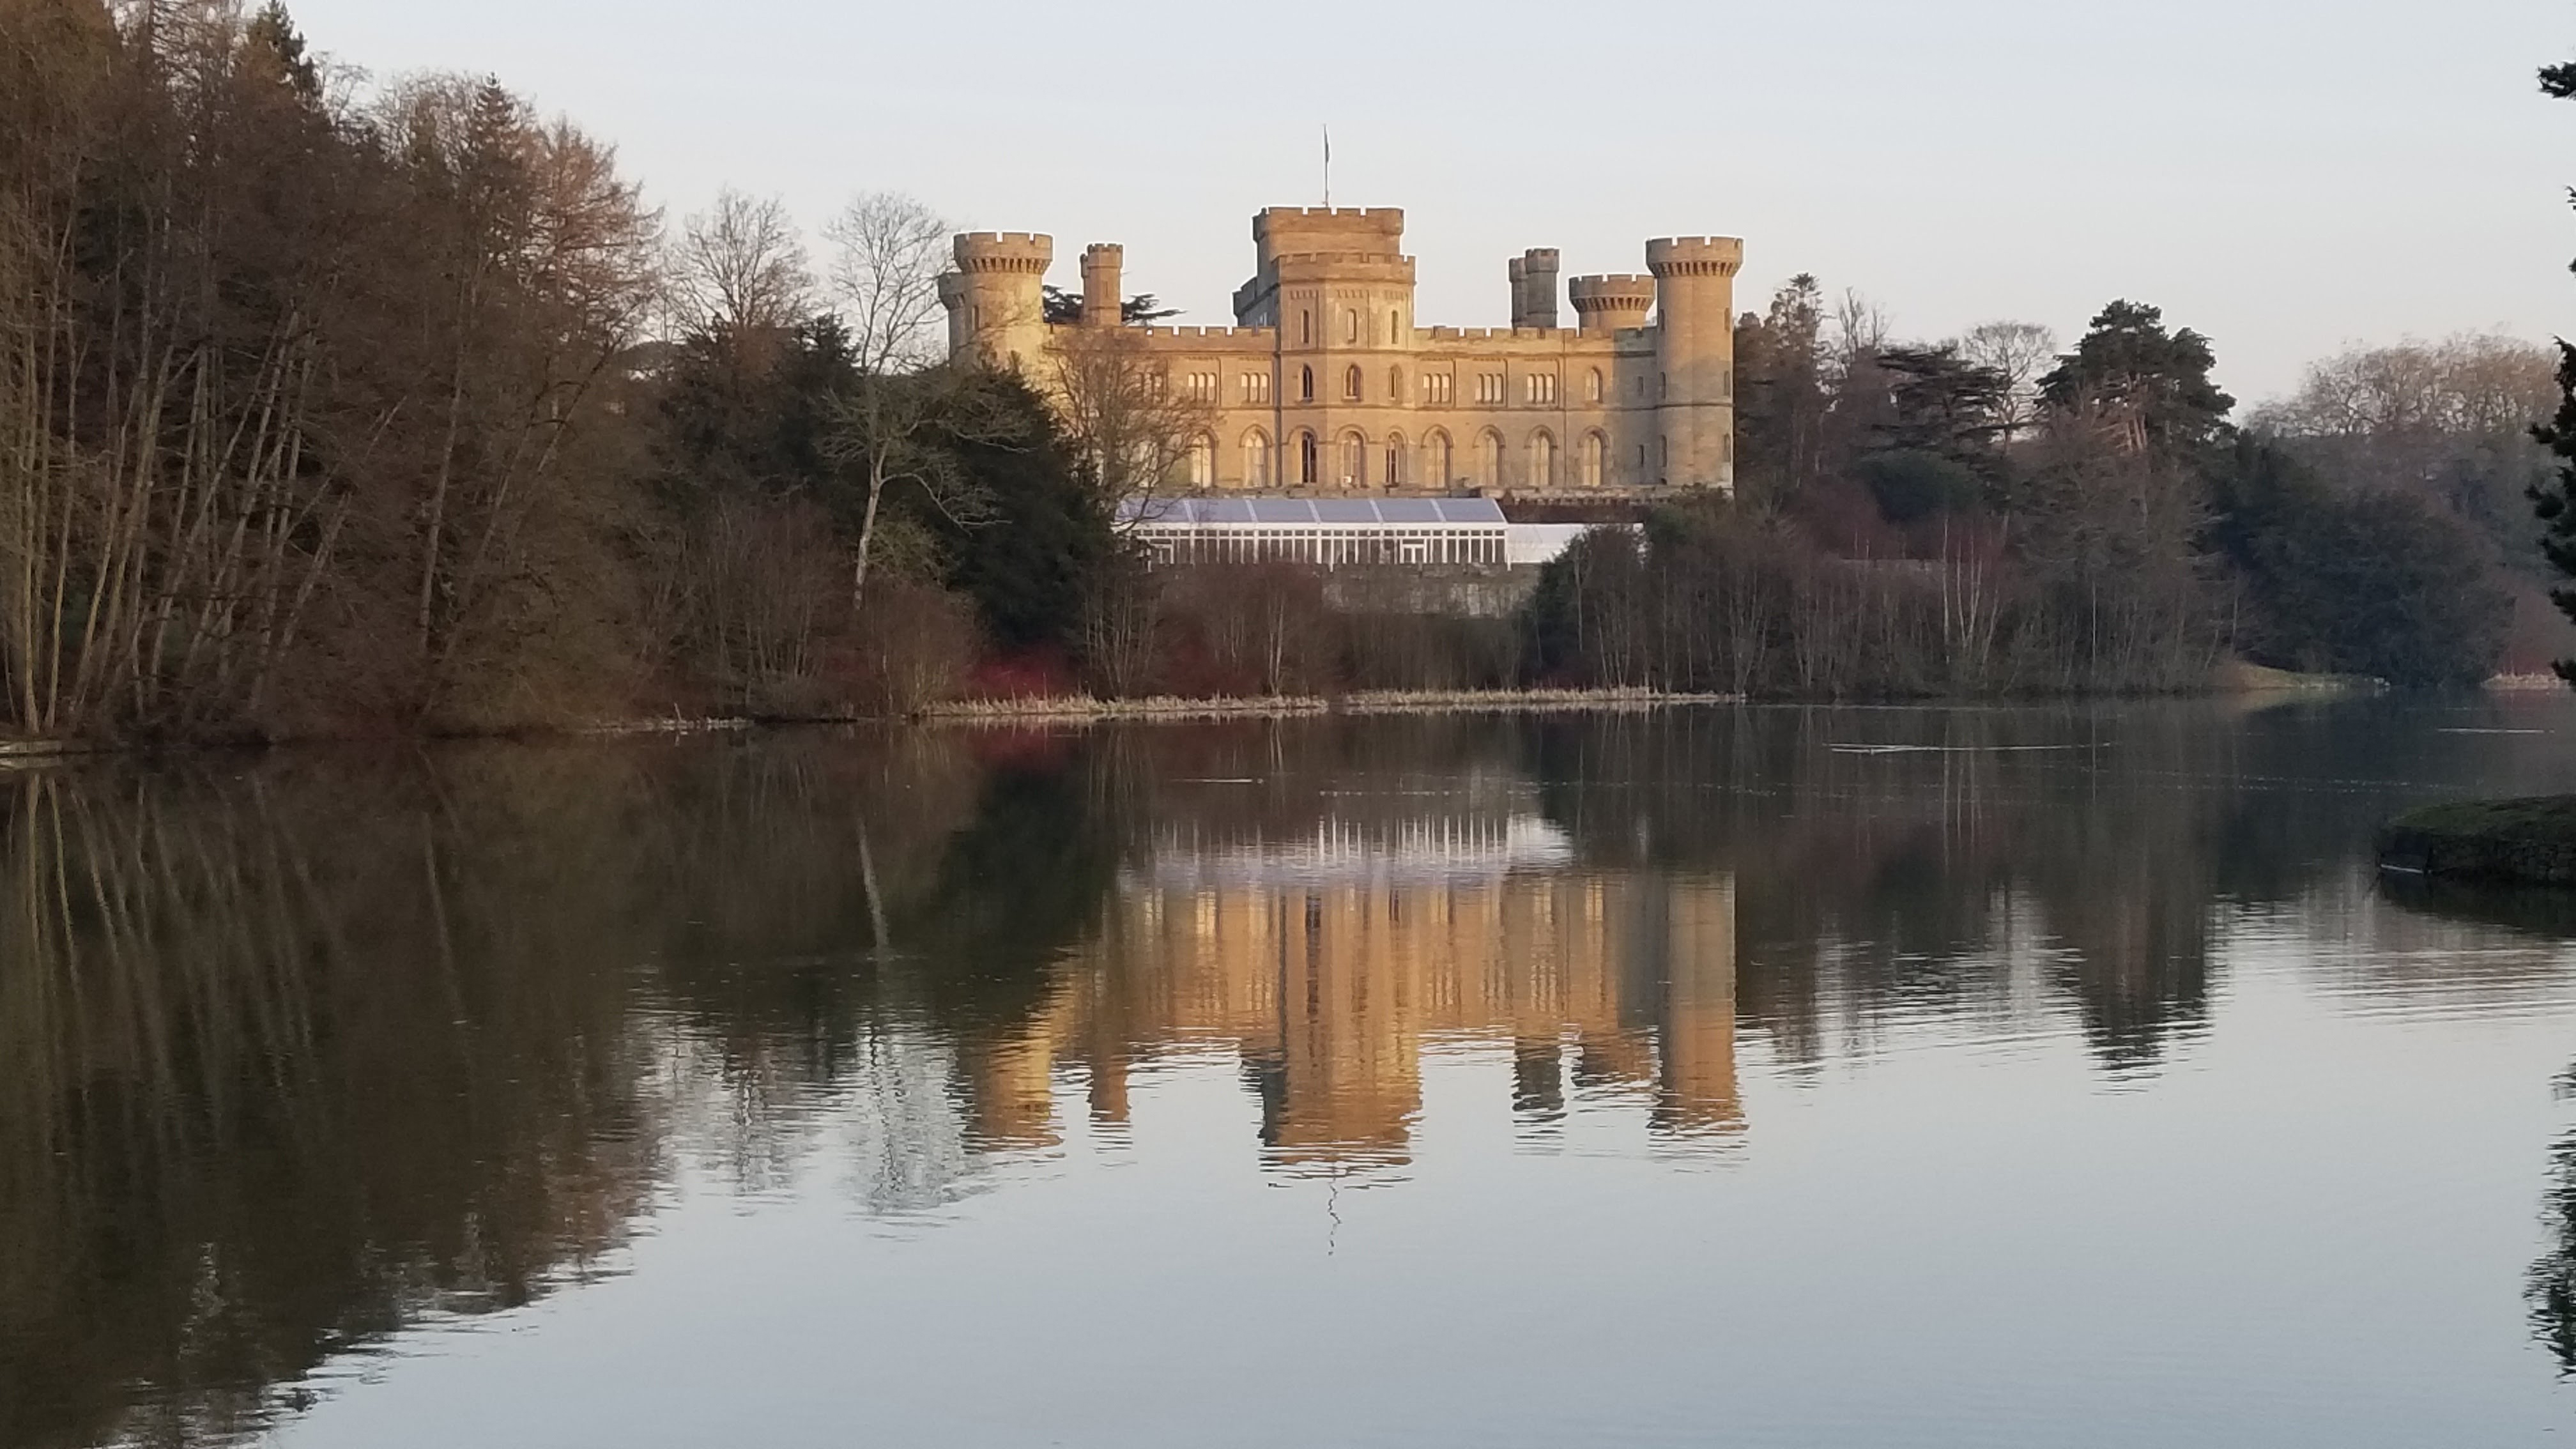 Castle Mania Home Facebook >> Spring Travel 2019 19 Best Places To Go Cnn Travel